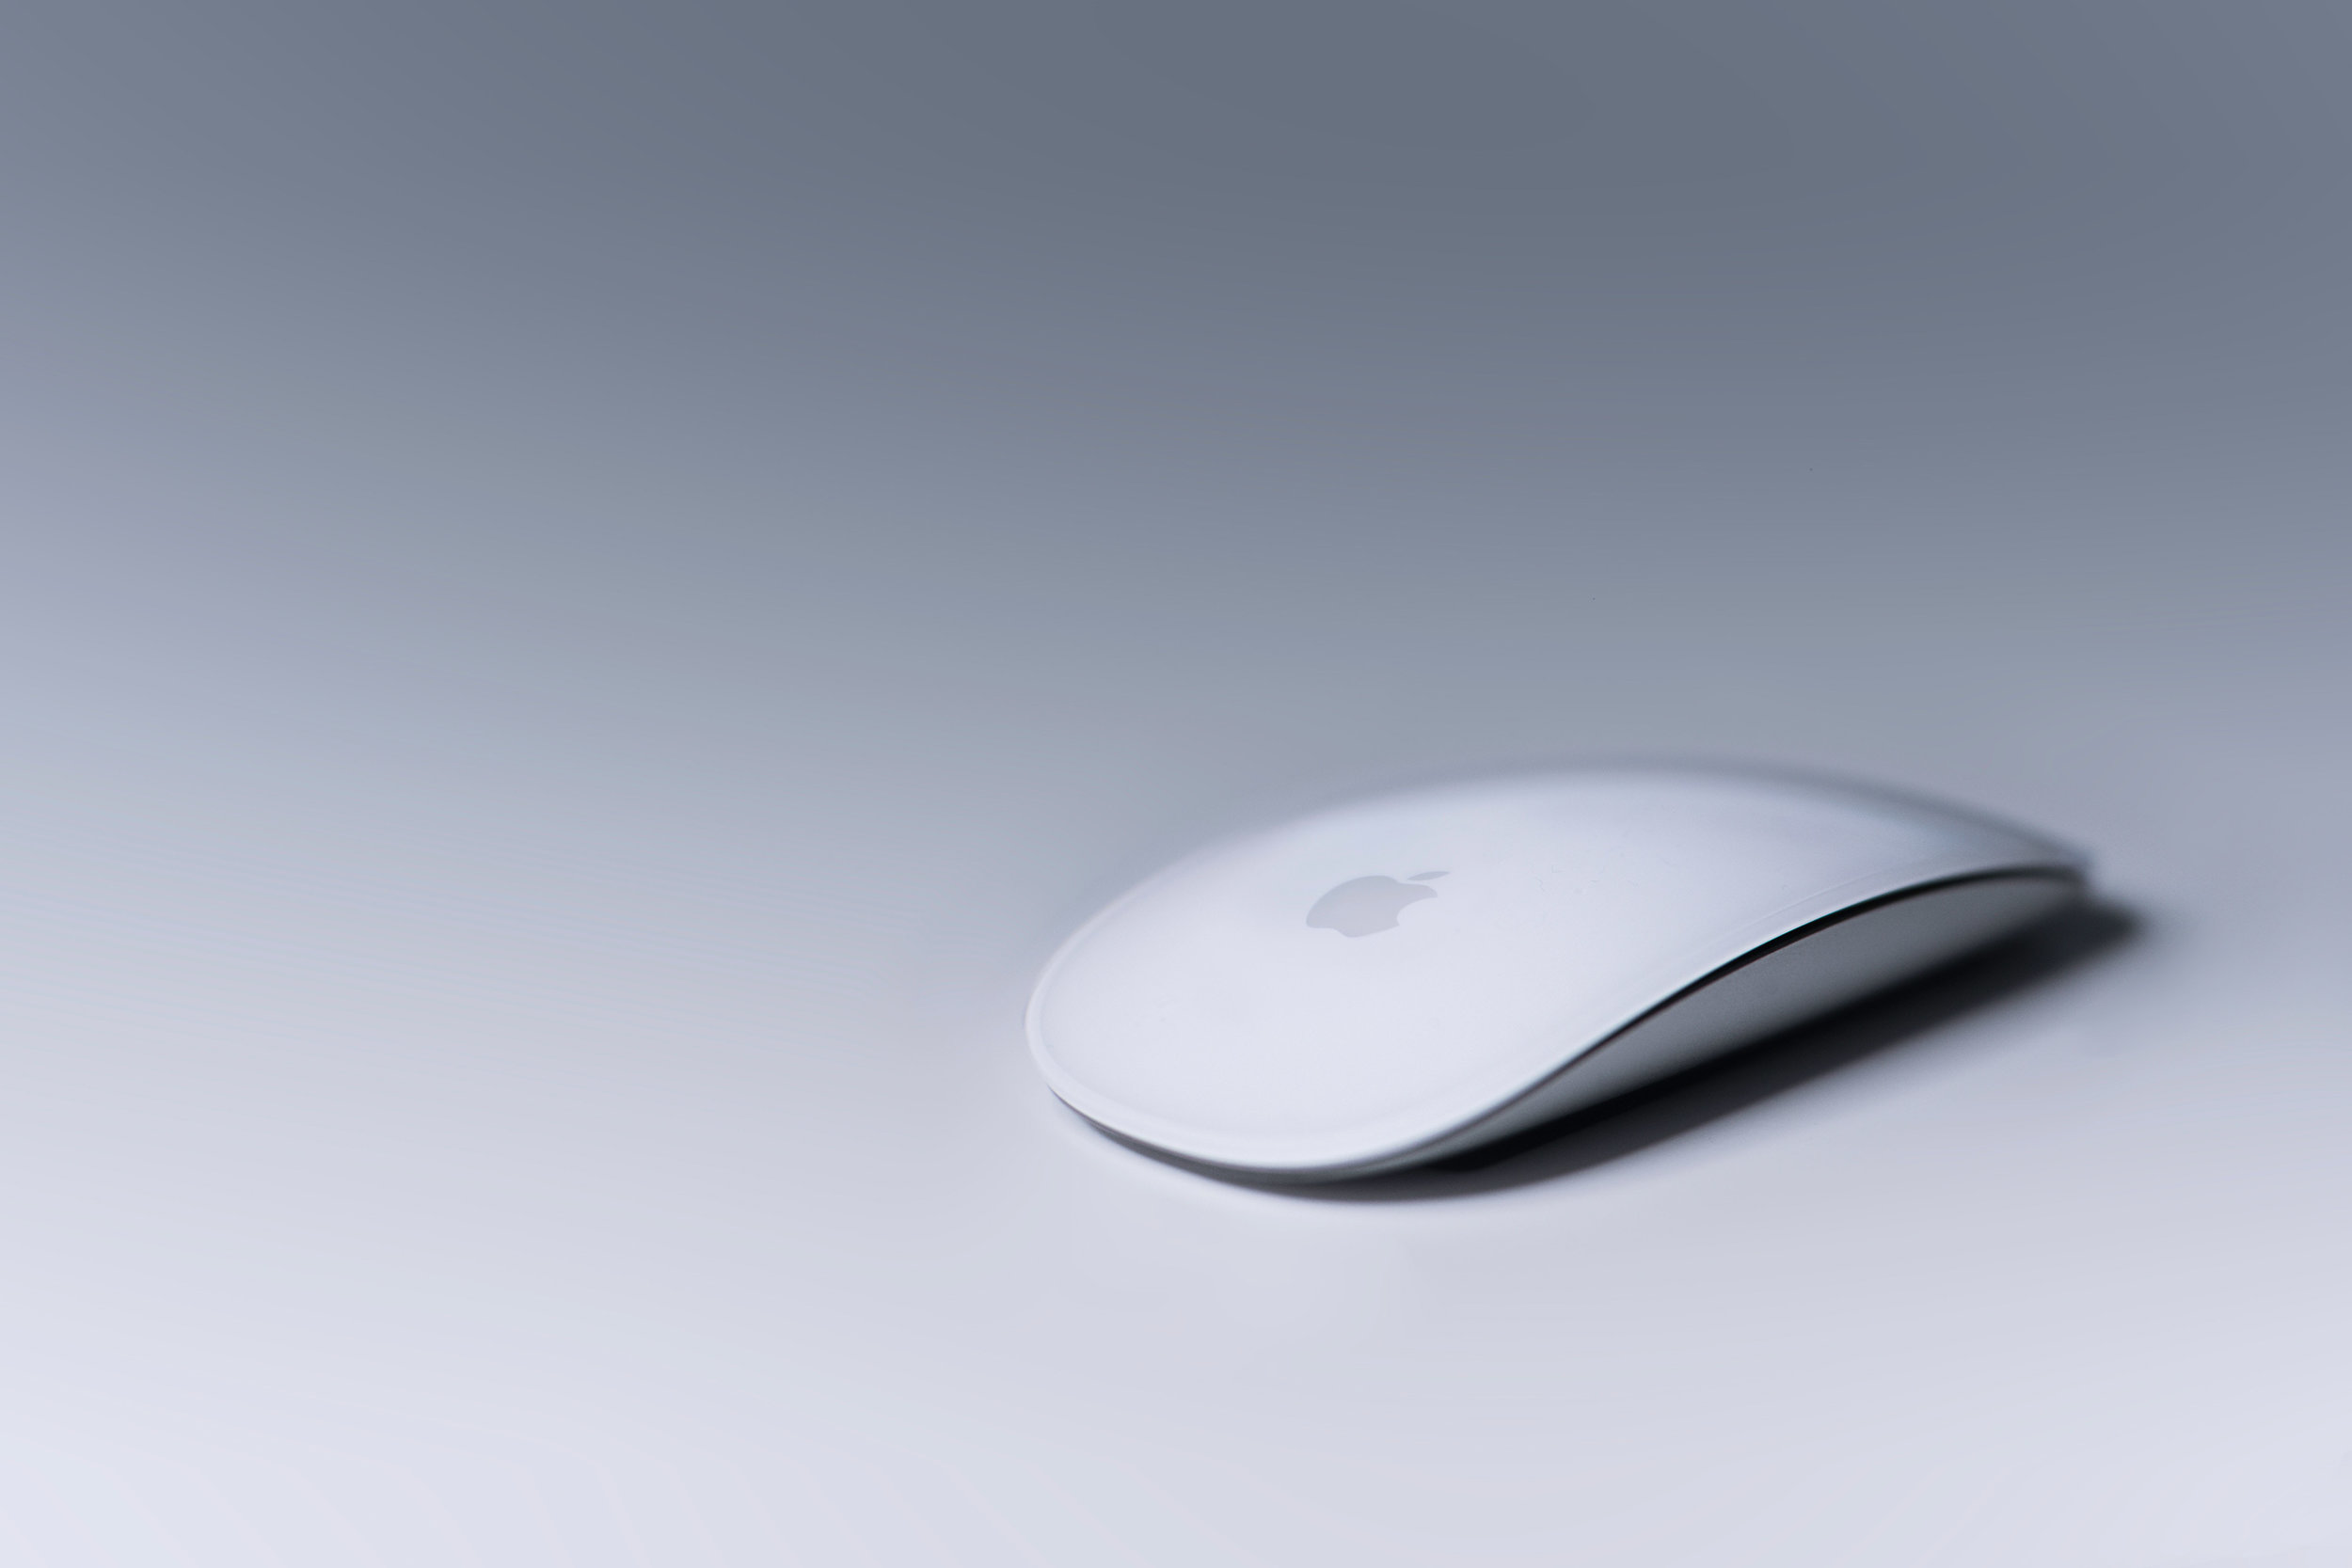 Archisoup-best-computer-mouse-architecture-student-and-architects.jpg